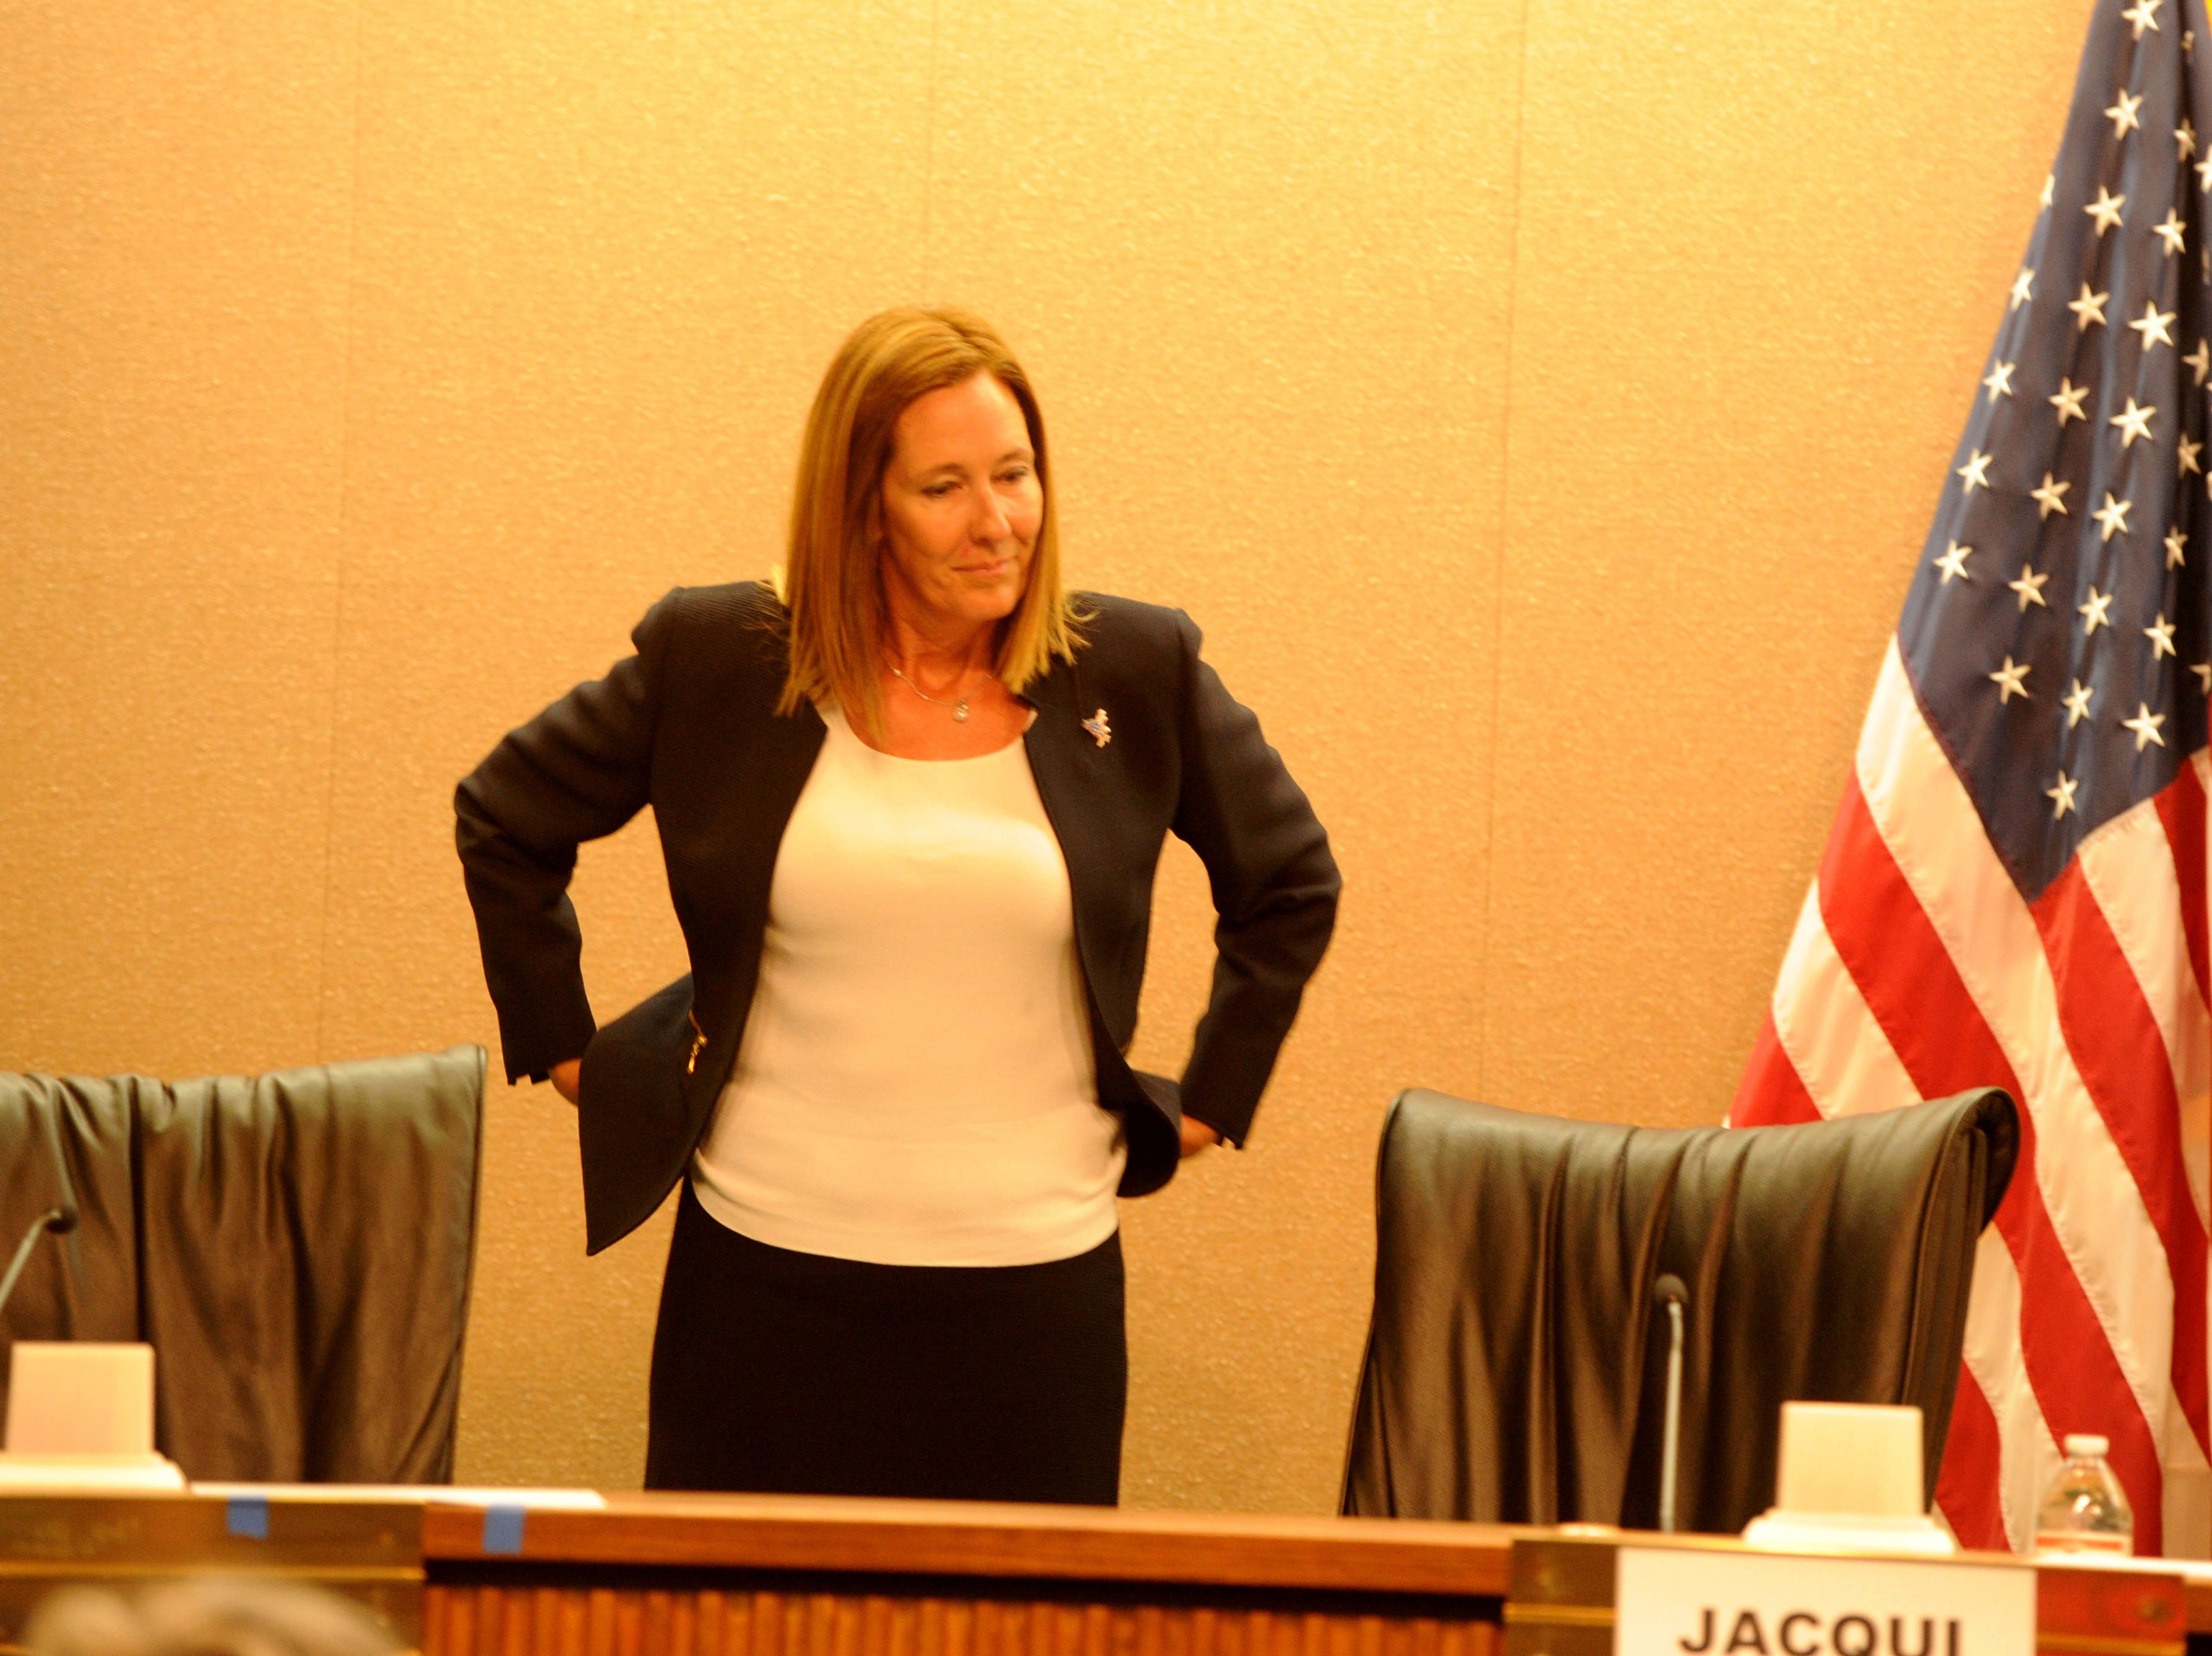 Assembly member Jacqui Irwin, D-Thousand Oaks, participates in a forum at Camarillo City Hall Tuesday night. The incumbent is one of two candidates for the 44th Assembly District.